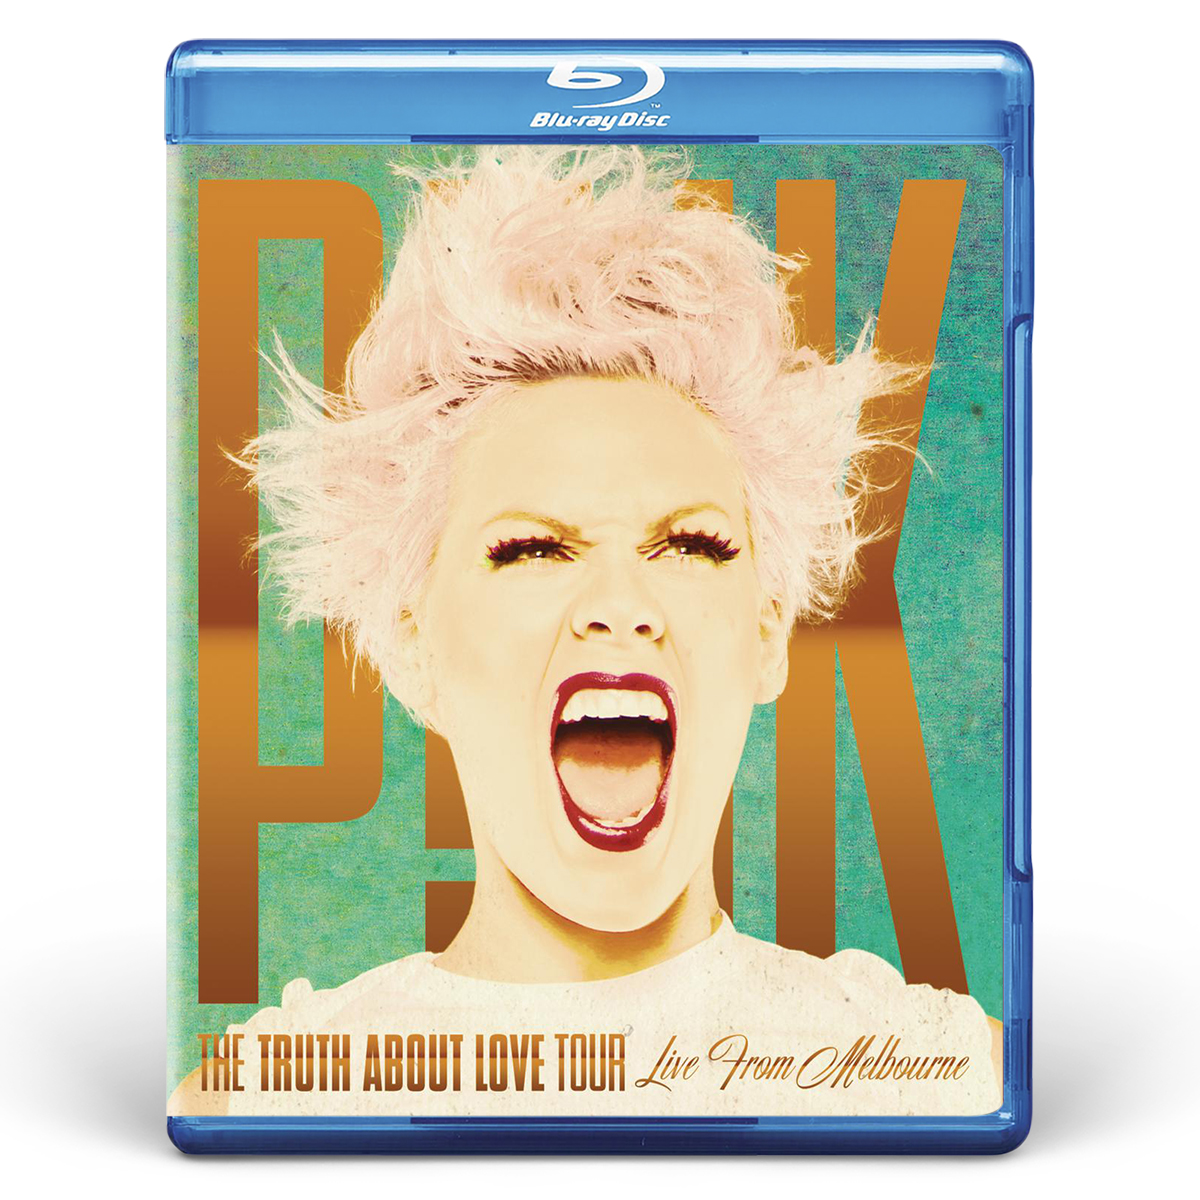 The Truth About Love Tour: Live From Melbourne Blu-Ray [Explicit]